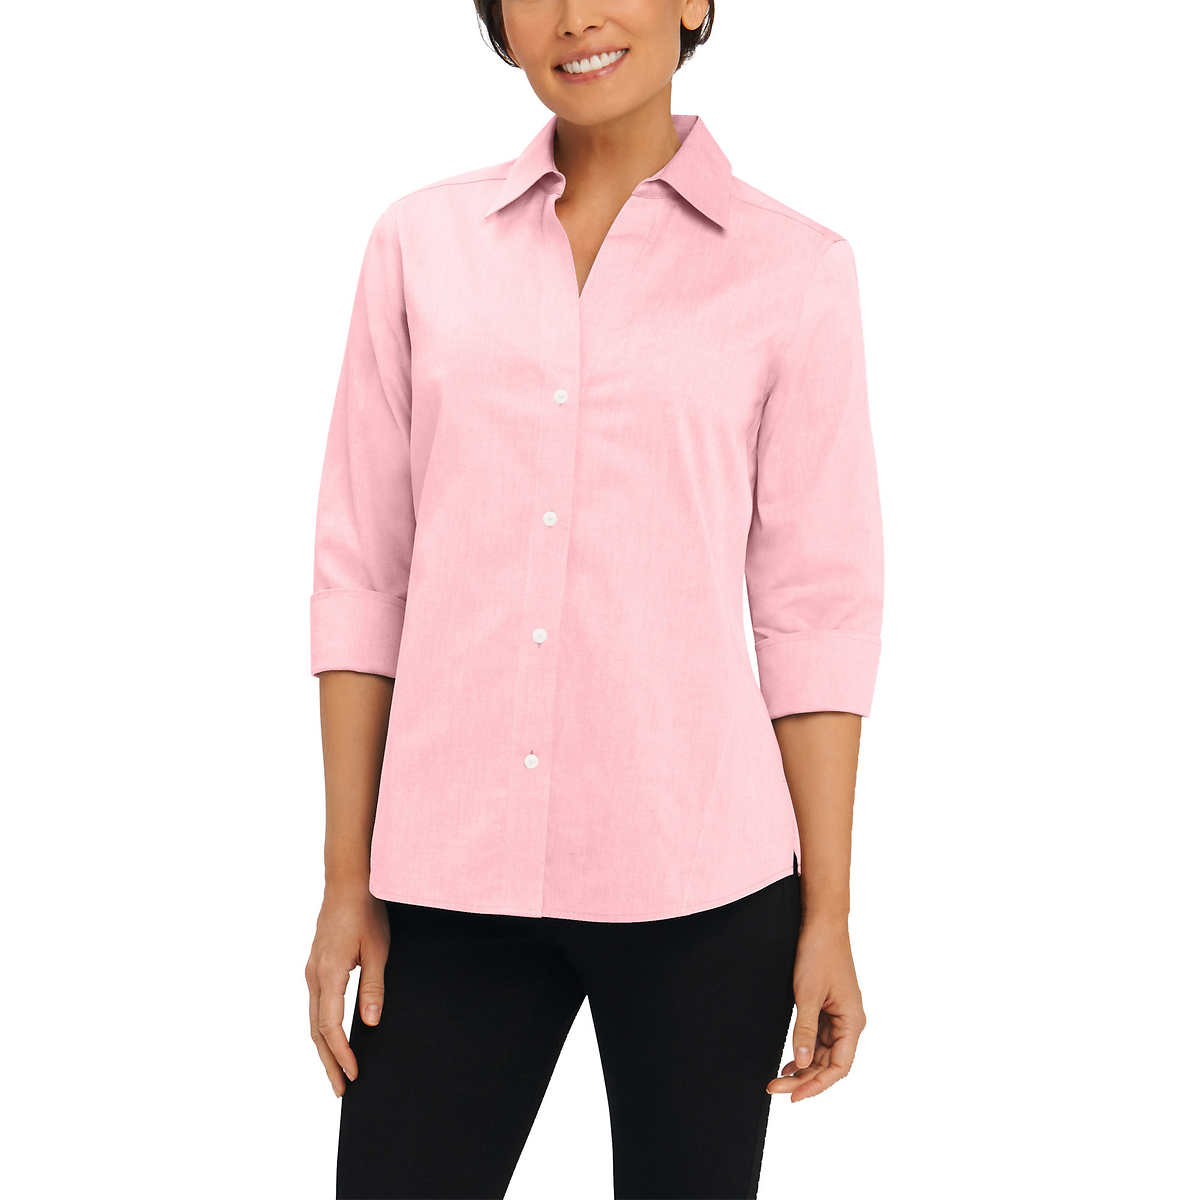 Foxcroft Women's Non-Iron Essential Paige Shirt For Women Pink - Small